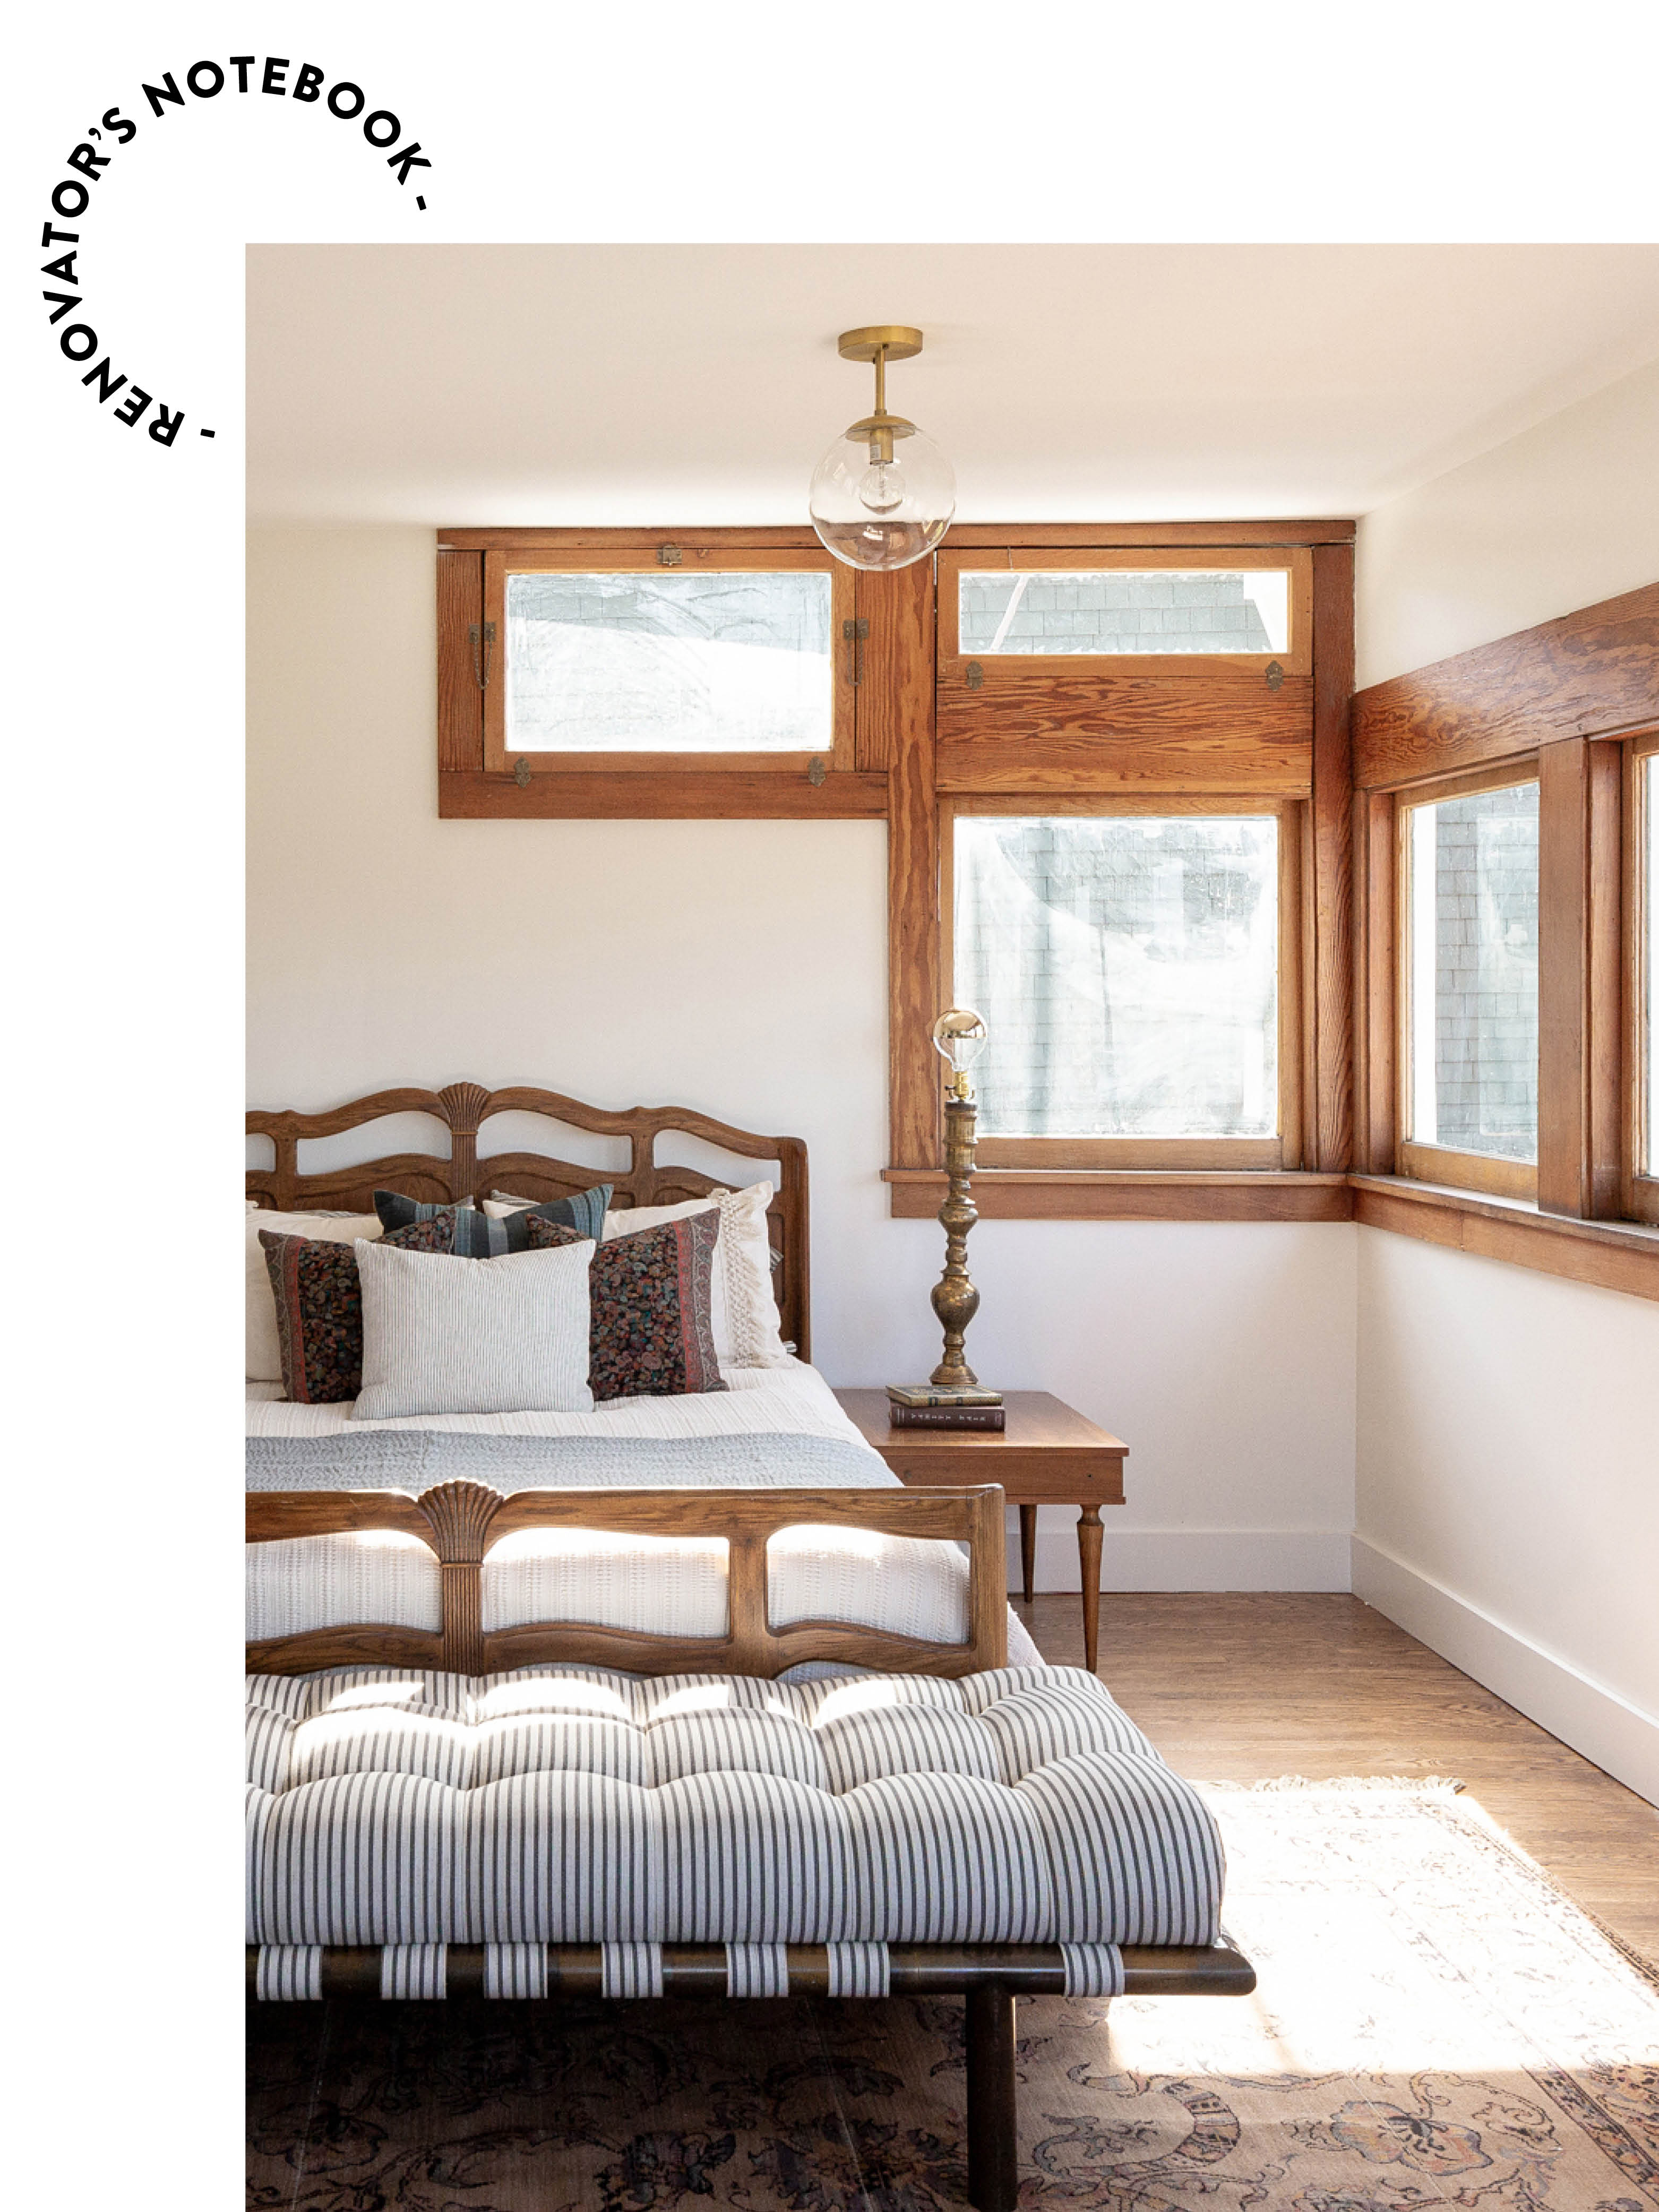 bright bedroom photo on a wood backdrop